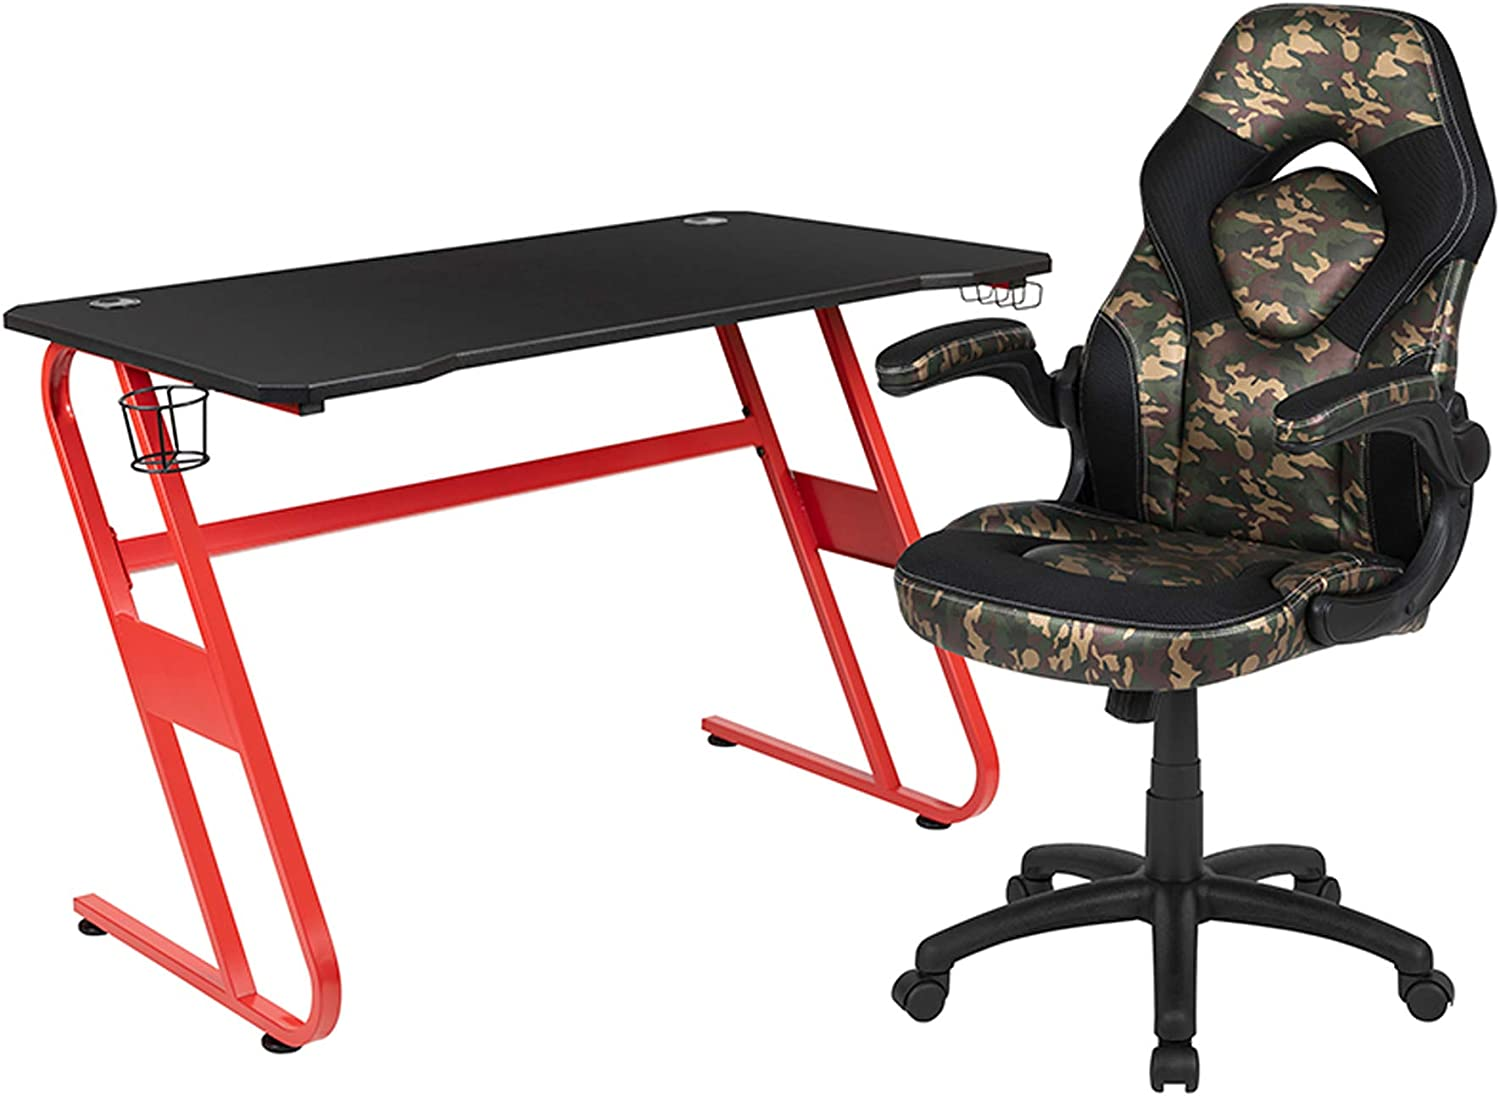 Offex Red Gaming New Free Shipping Desk and Award Camouflage with Black Chair Set Racing